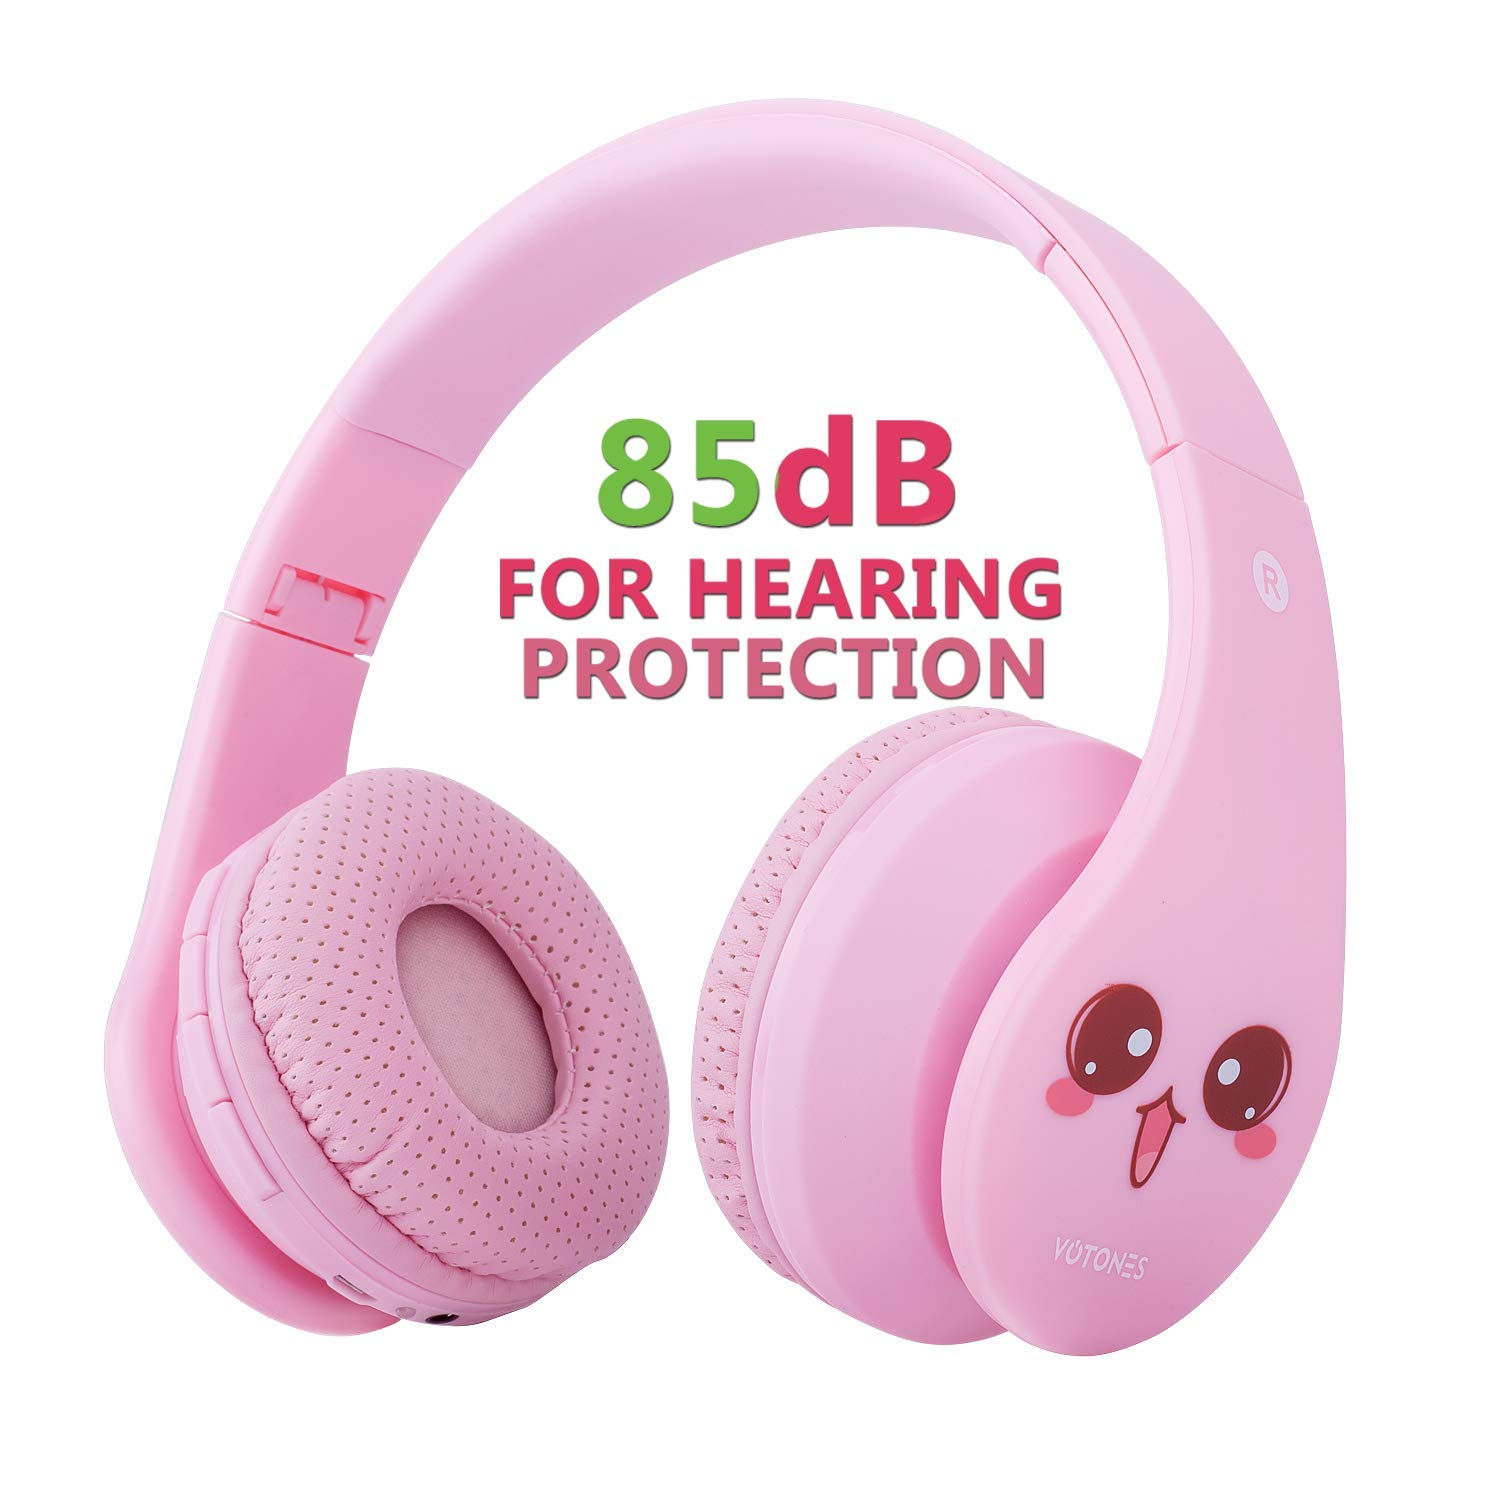 VOTONES Kids Wireless Headphones 85dB Hearing Protection Girls Bluetooth Over Ear Headphones,Foldable Stereo Sound Headset with Microphone 3.5mm Jack for Smartphone PC Tablet(Pink)